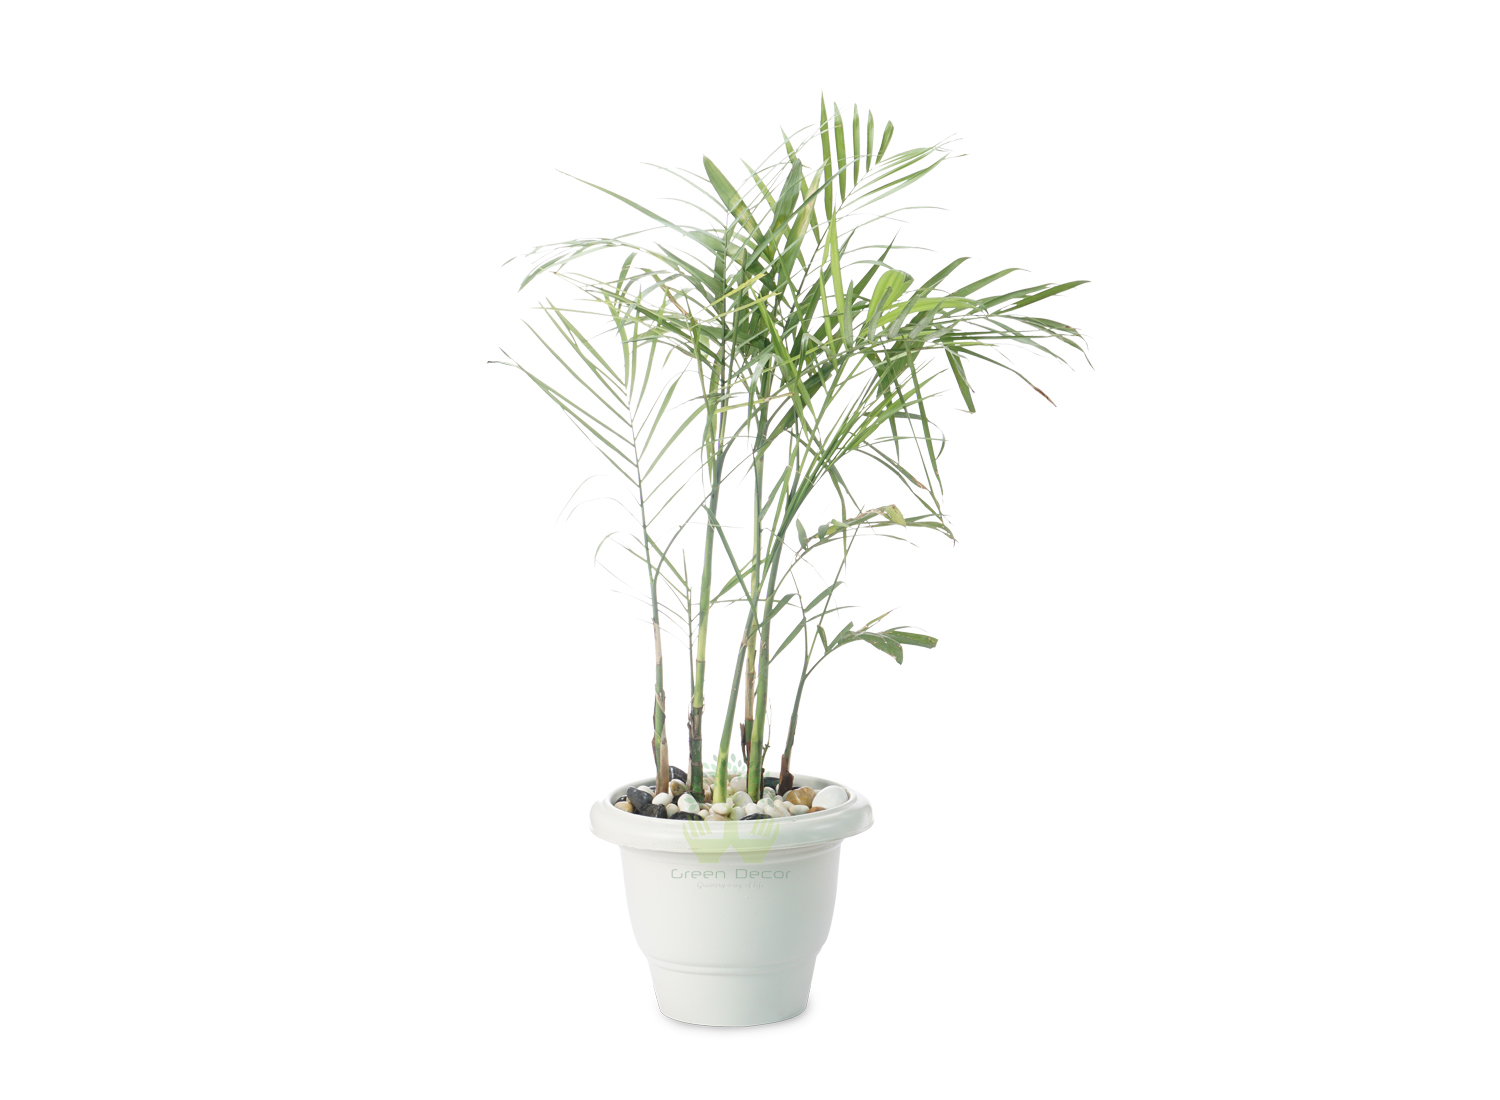 Buy Bamboo Palm Plants Front View , White Pots and seeds in Delhi NCR by the best online nursery shop Greendecor.